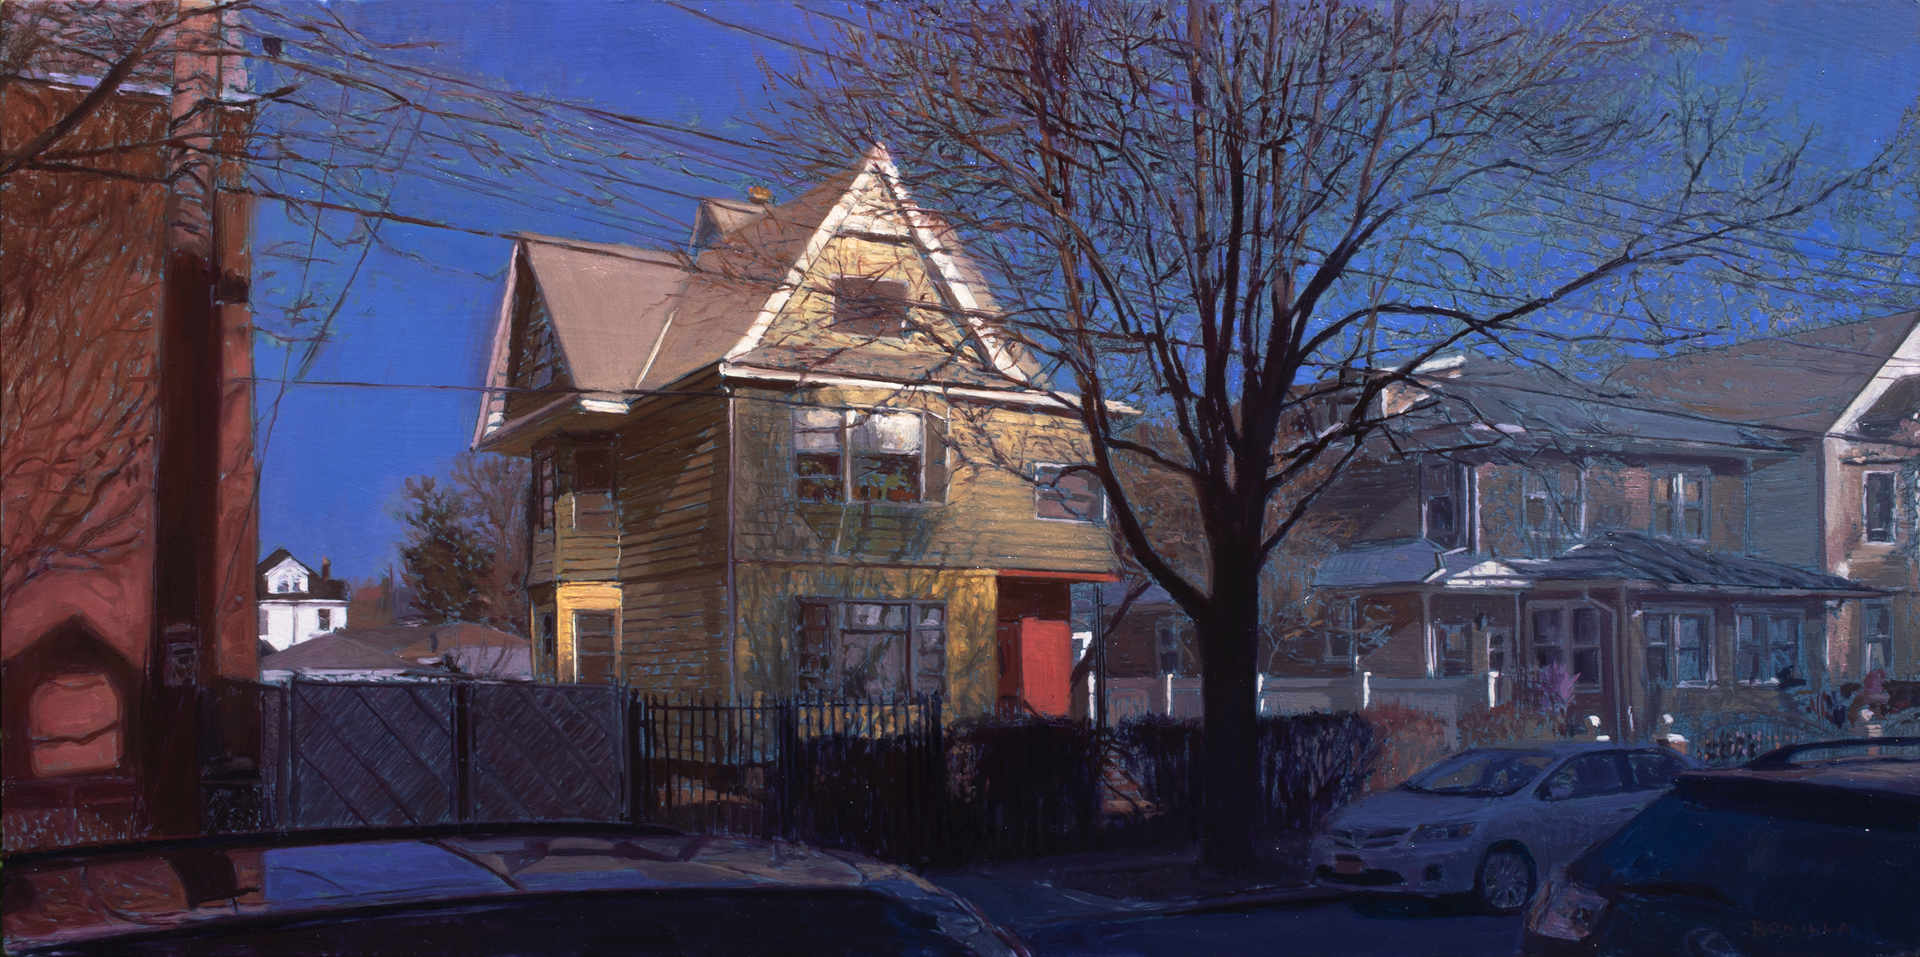 Across the street from Mom and Dads by Raymond Bonilla